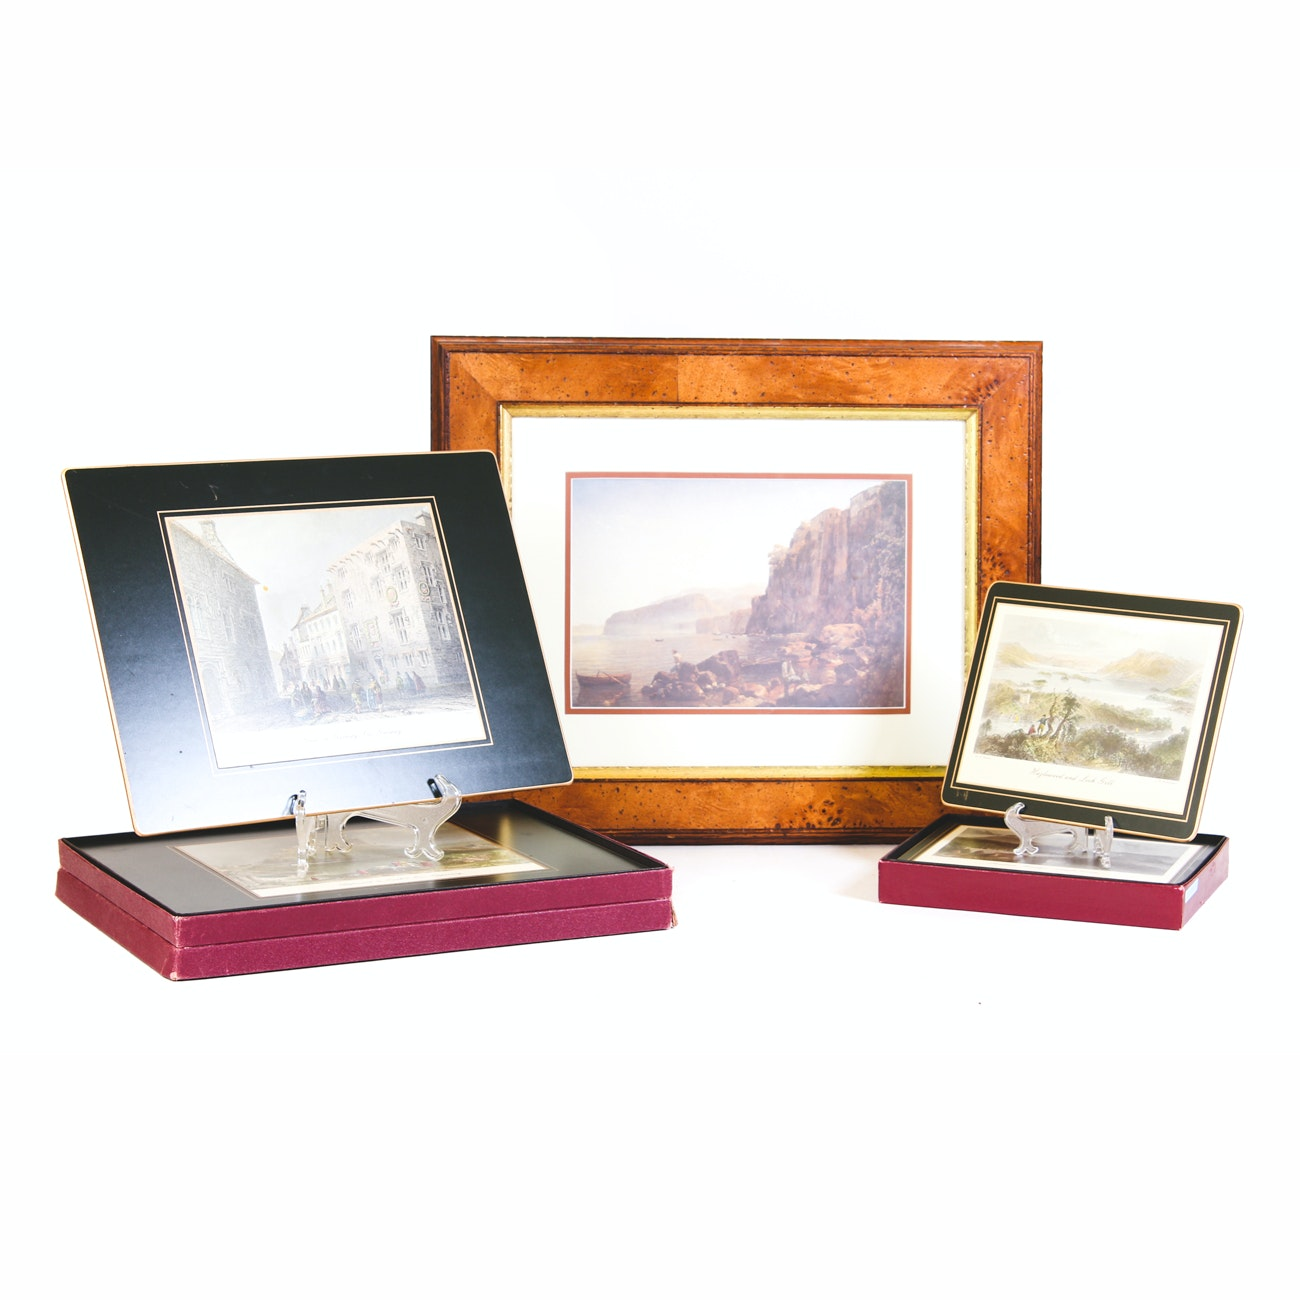 Boxed Lady Clare Placemat Sets and Offset Lithograph of Seaside Landscape